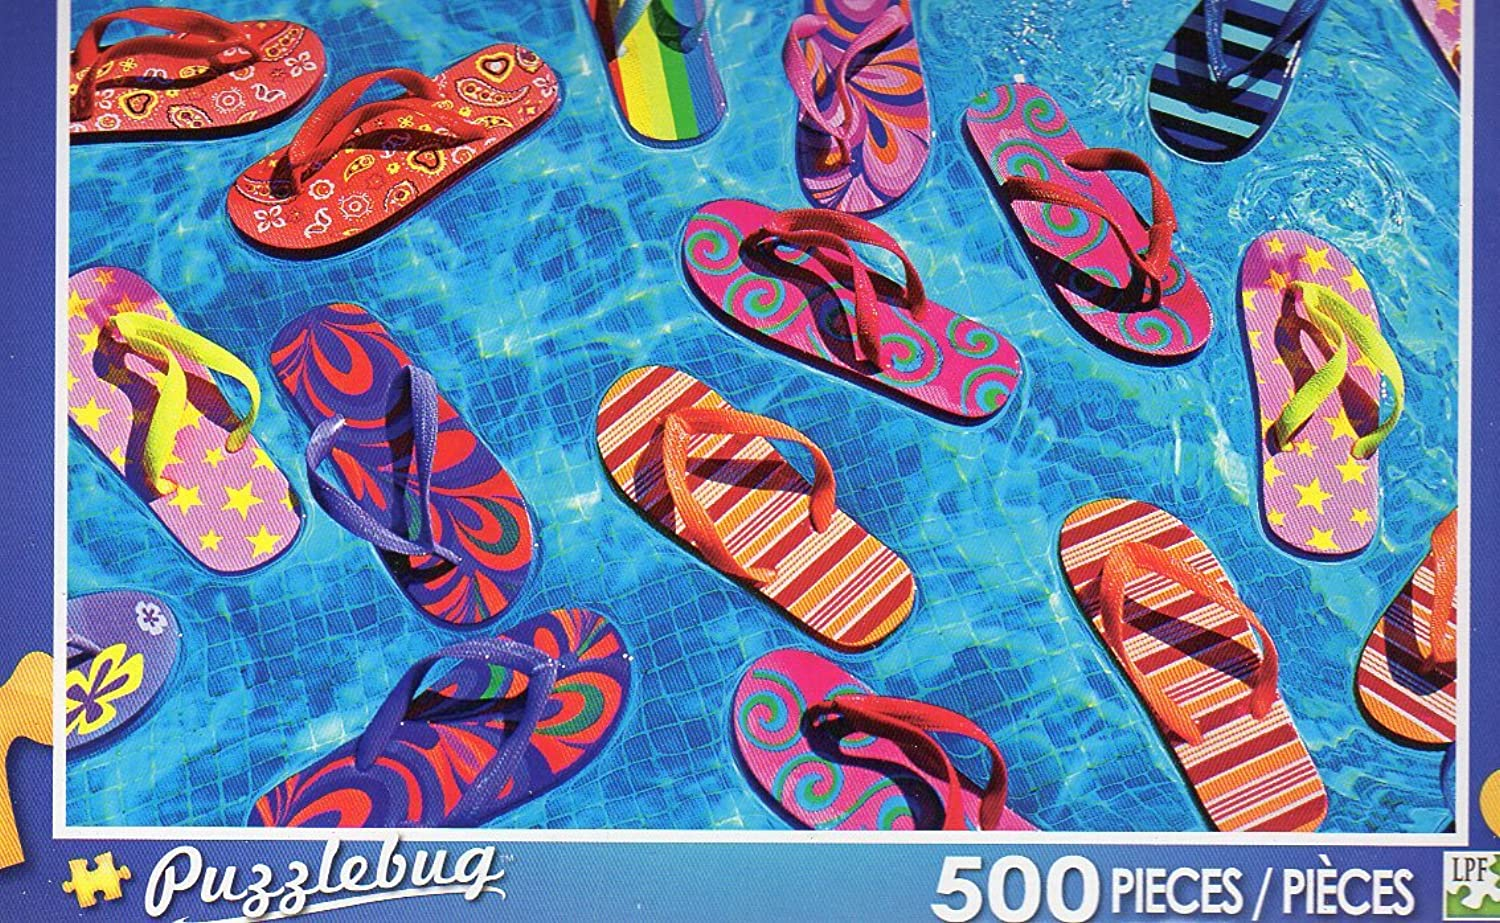 colorful Flipflops Floating in a Pool  Puzzlebug 500 Piece Jigsaw Puzzle by Puzzlebug